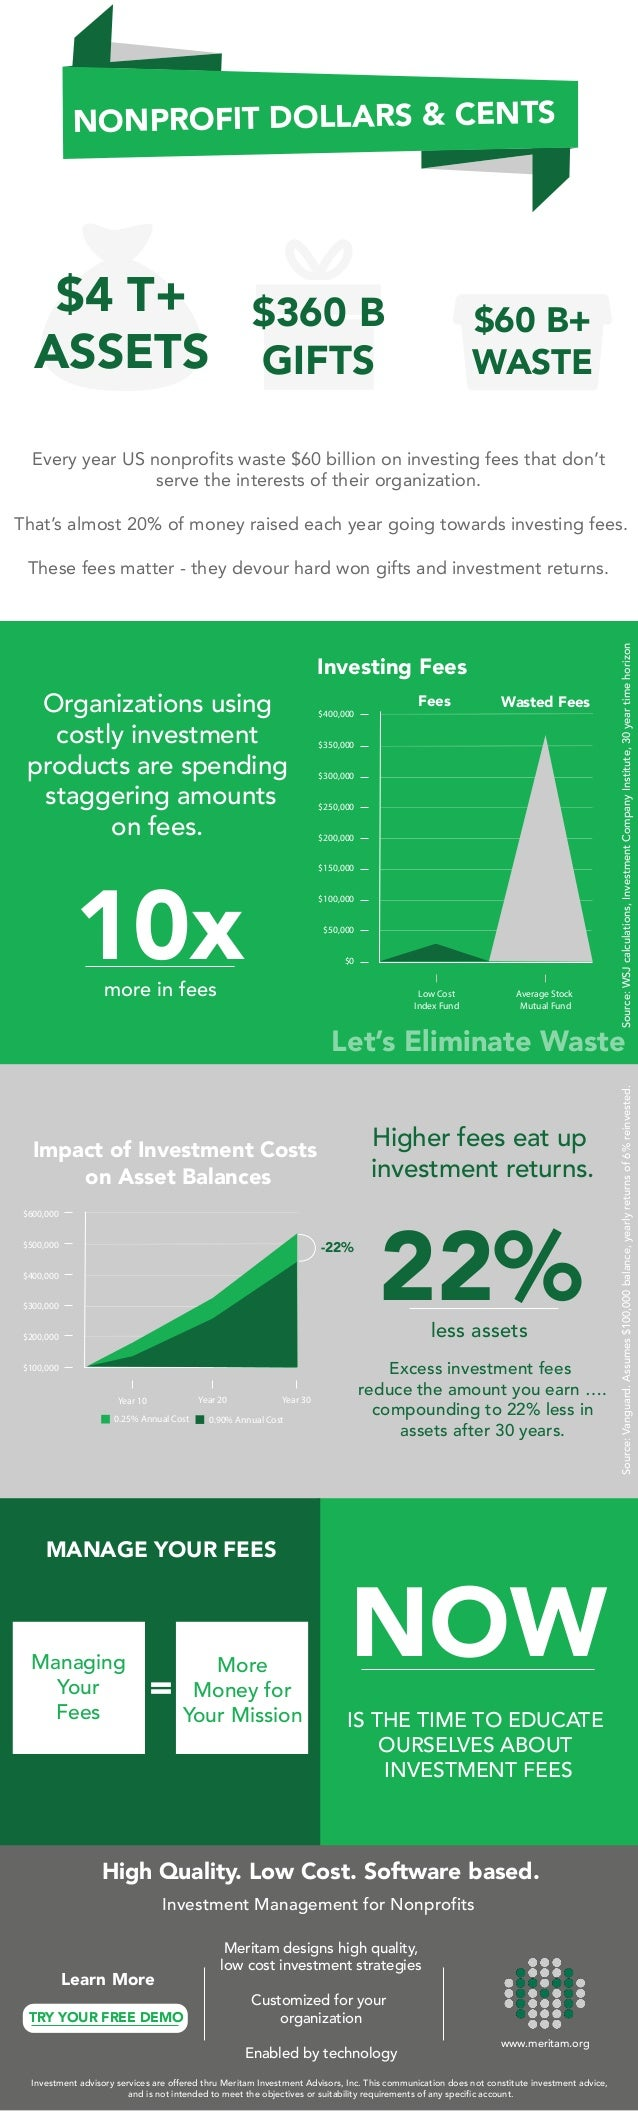 Every year US nonprofits waste $60 billion on investing fees that don't serve the interests of their organization. That's ...